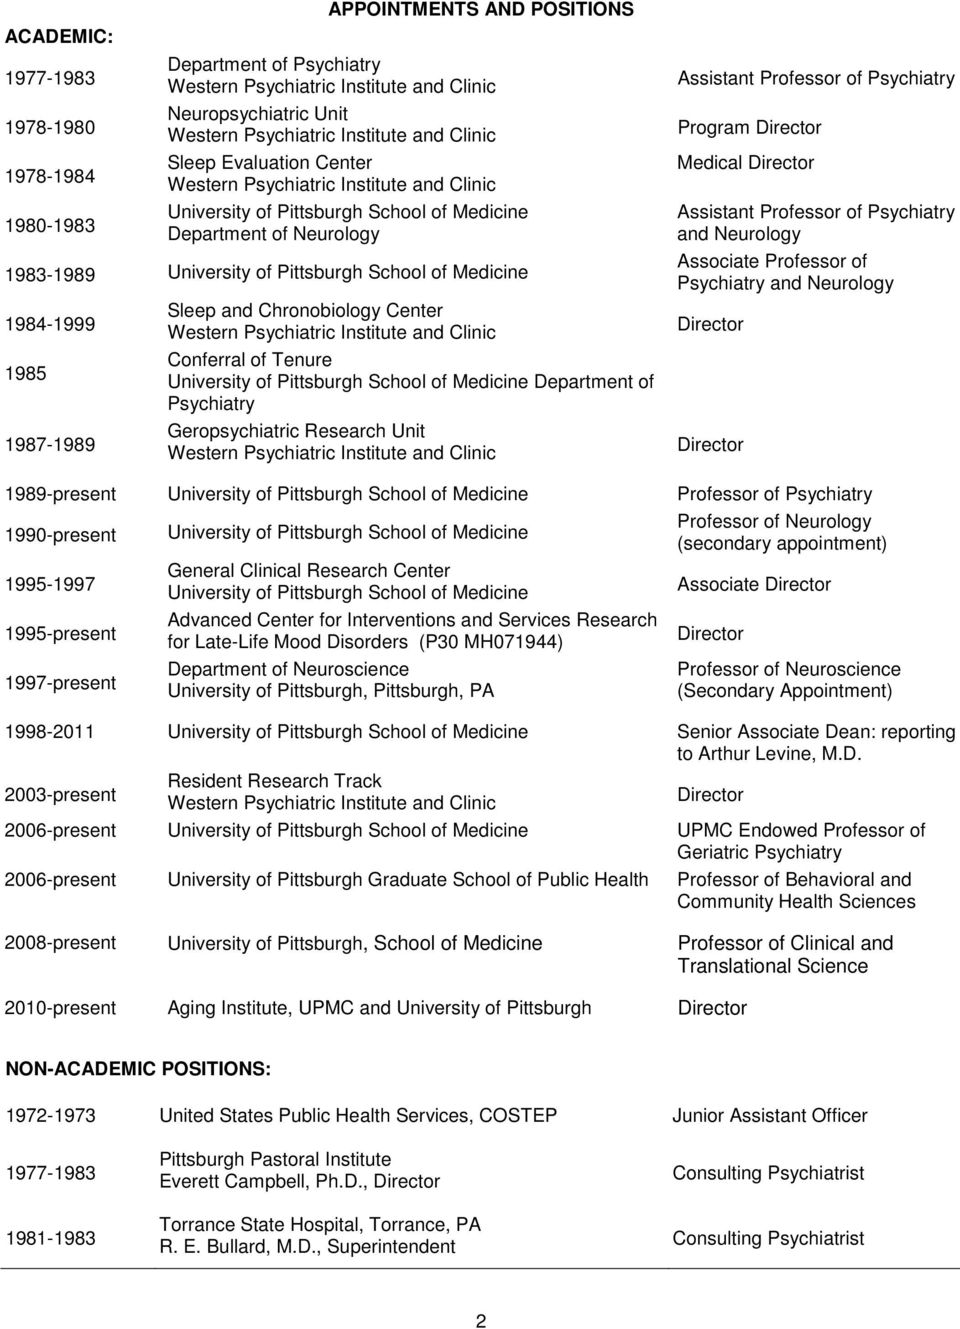 curriculum vitae charles f reynolds iii m d university of 1984 1999 1985 1987 1989 sleep and chronobiology center western psychiatric institute and clinic